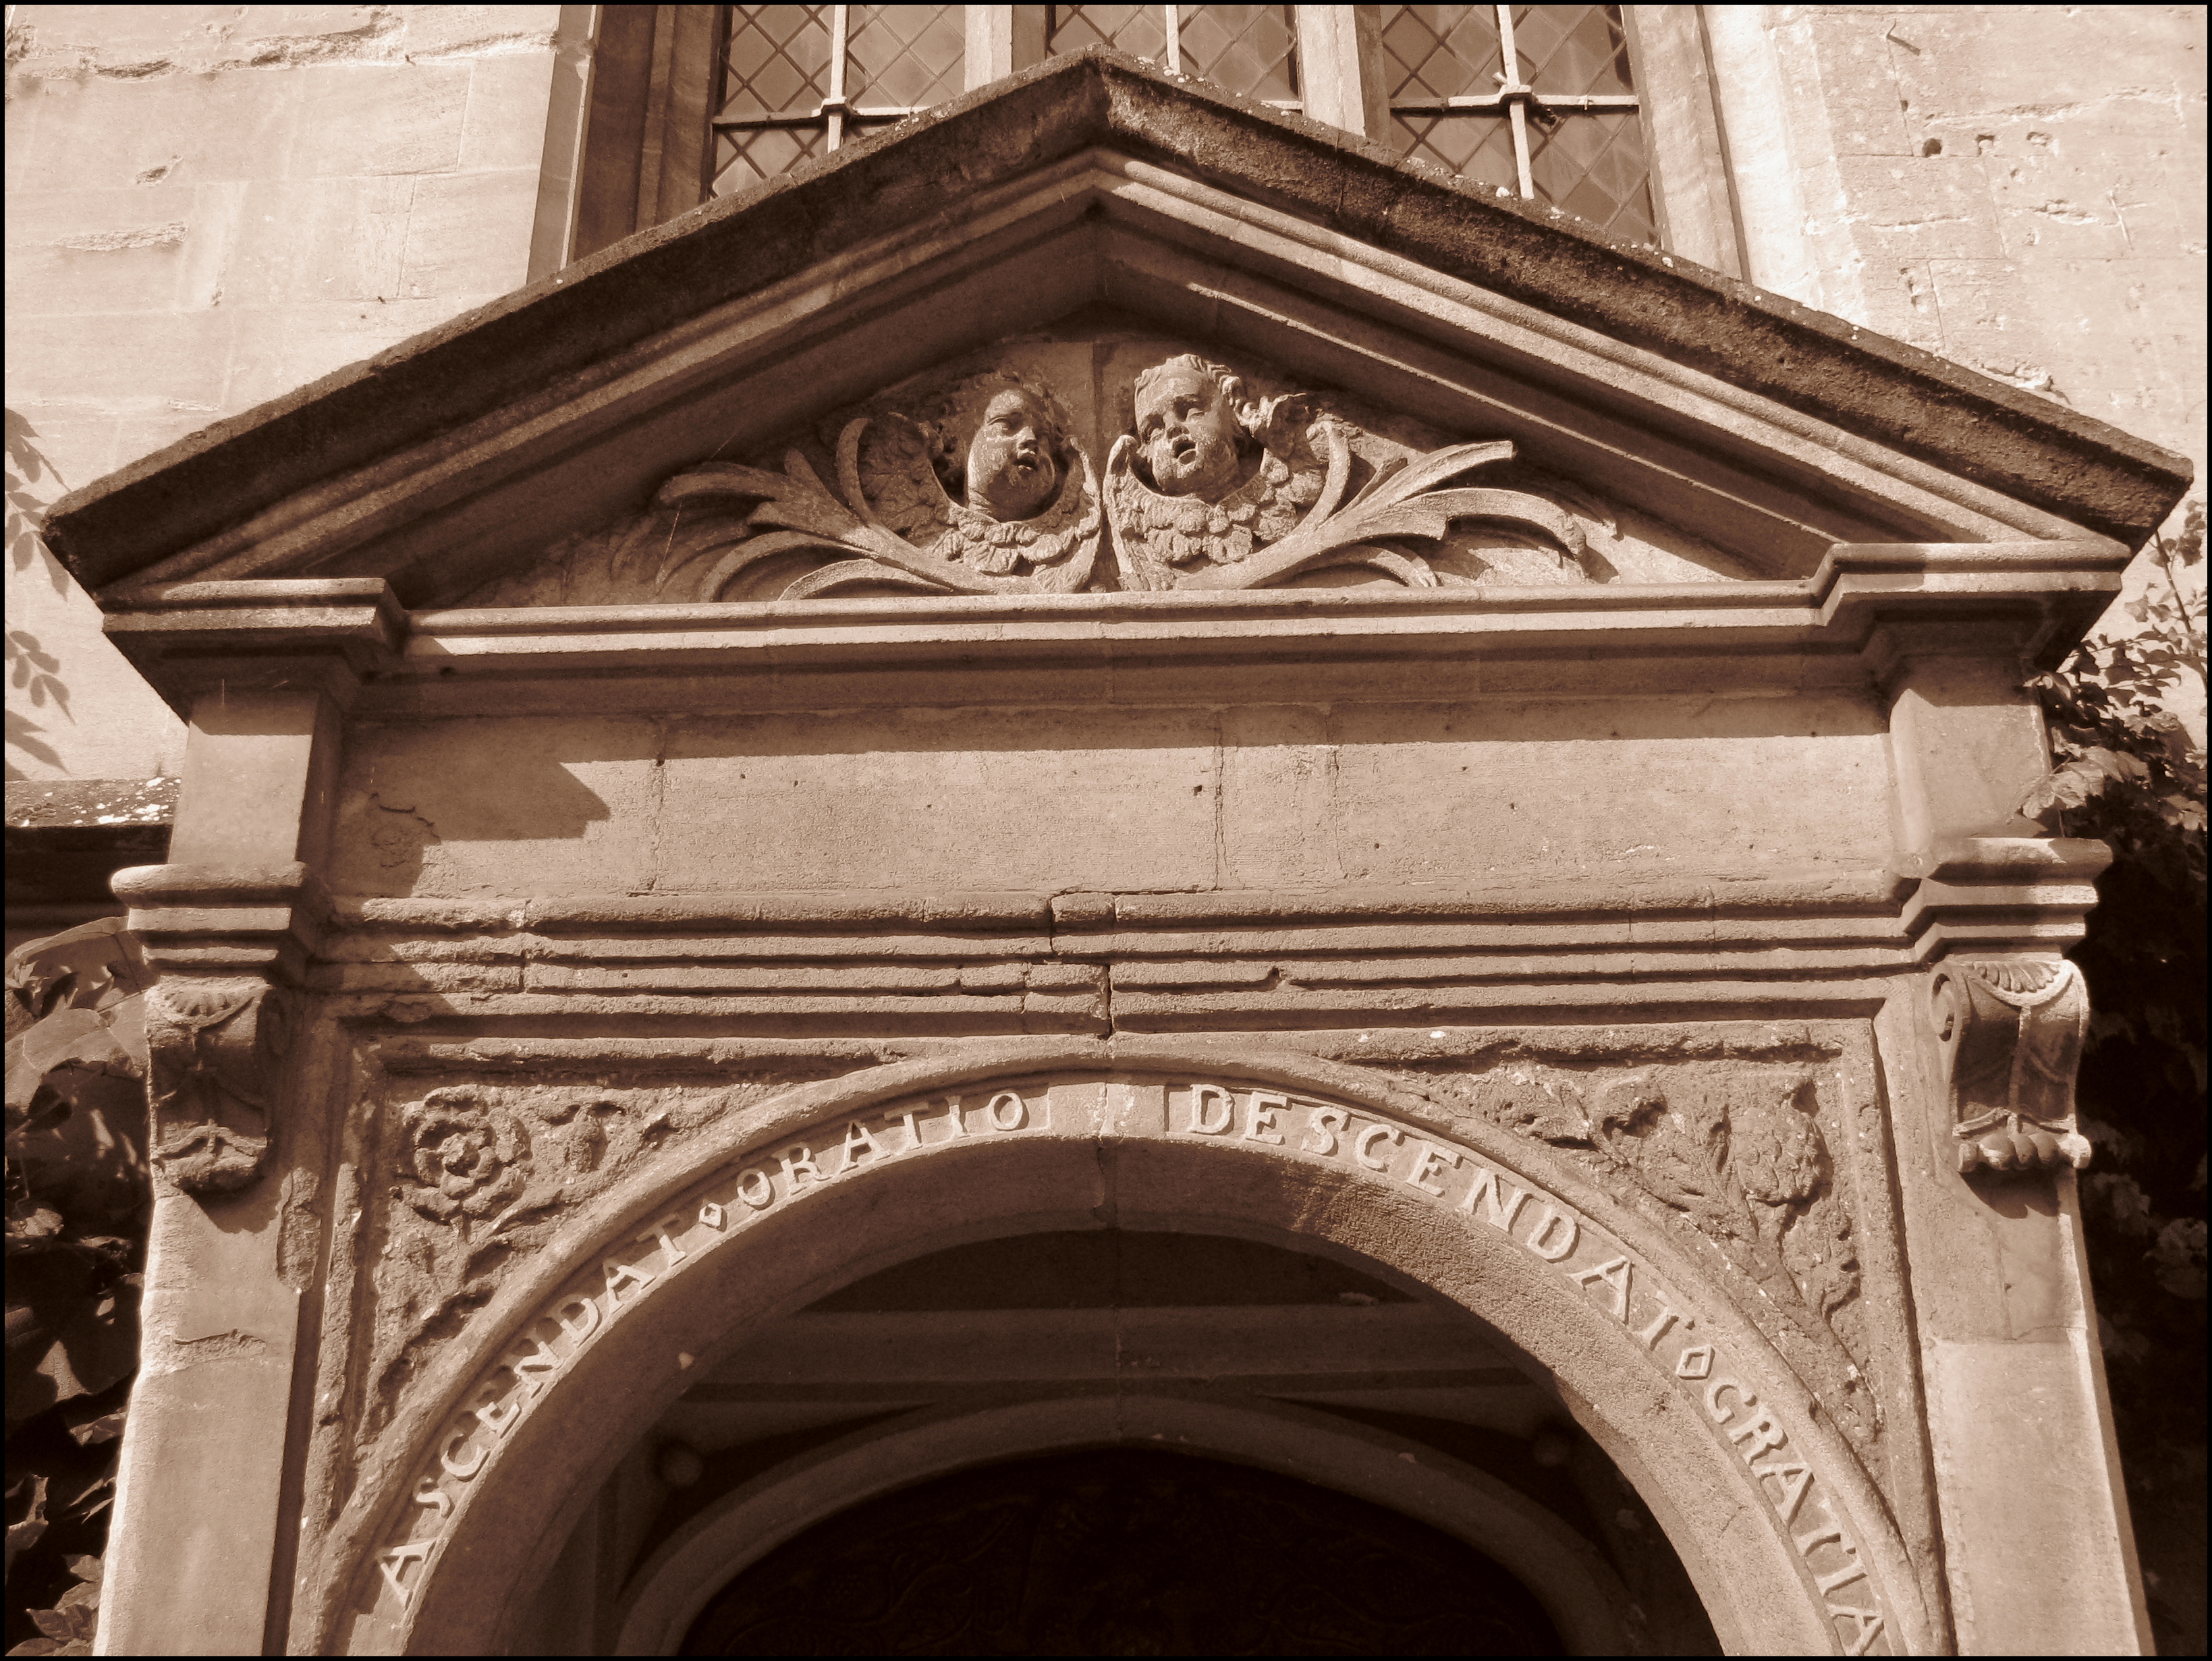 Part of a stone doorway. The top is triangular, with the heads of two